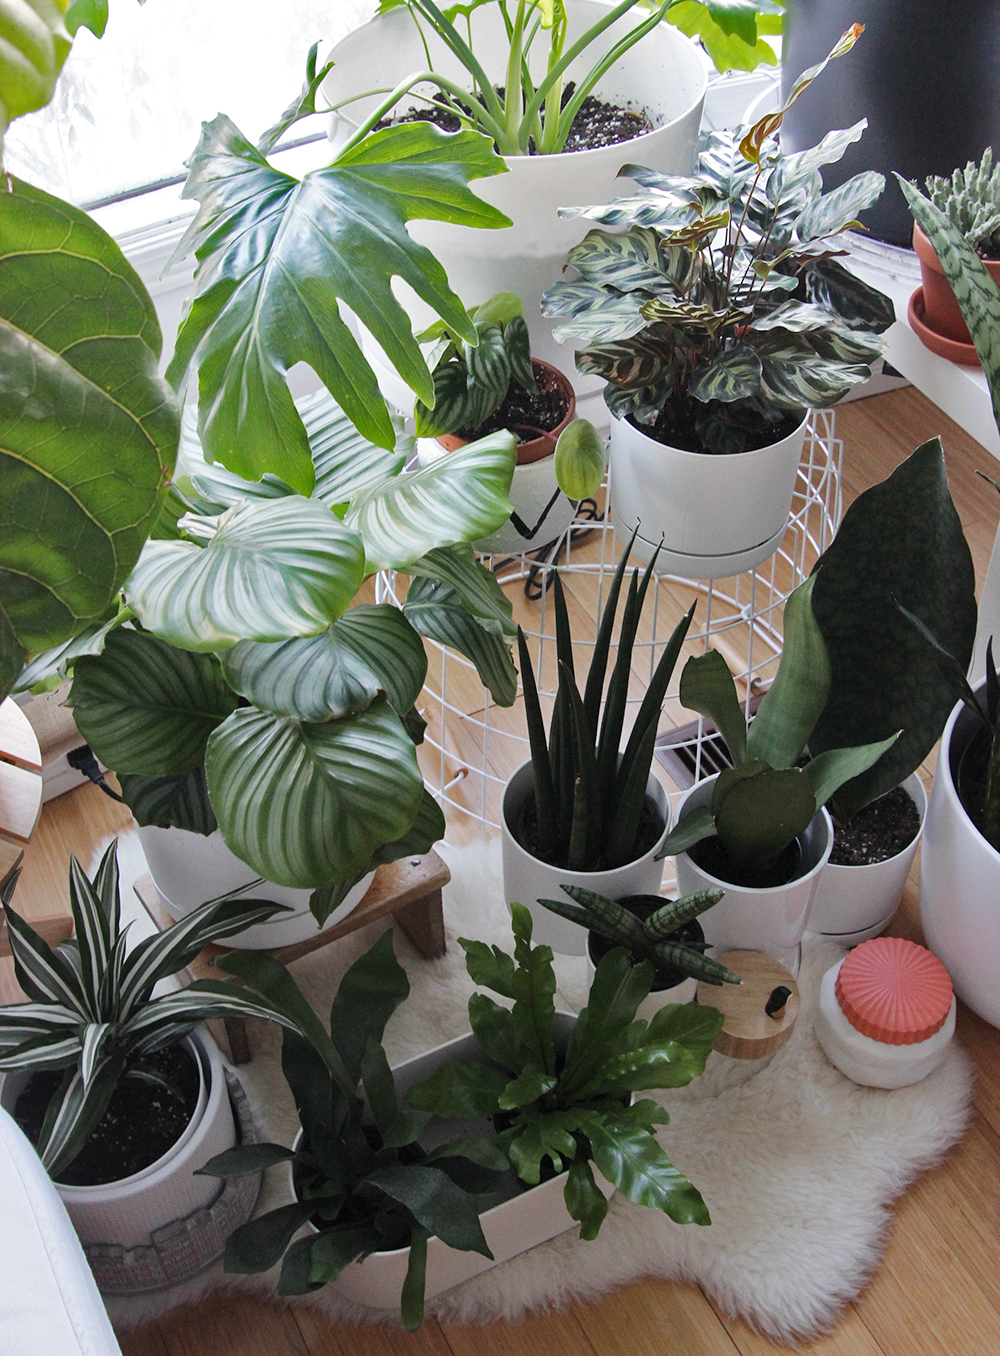 image of various indoor house plants